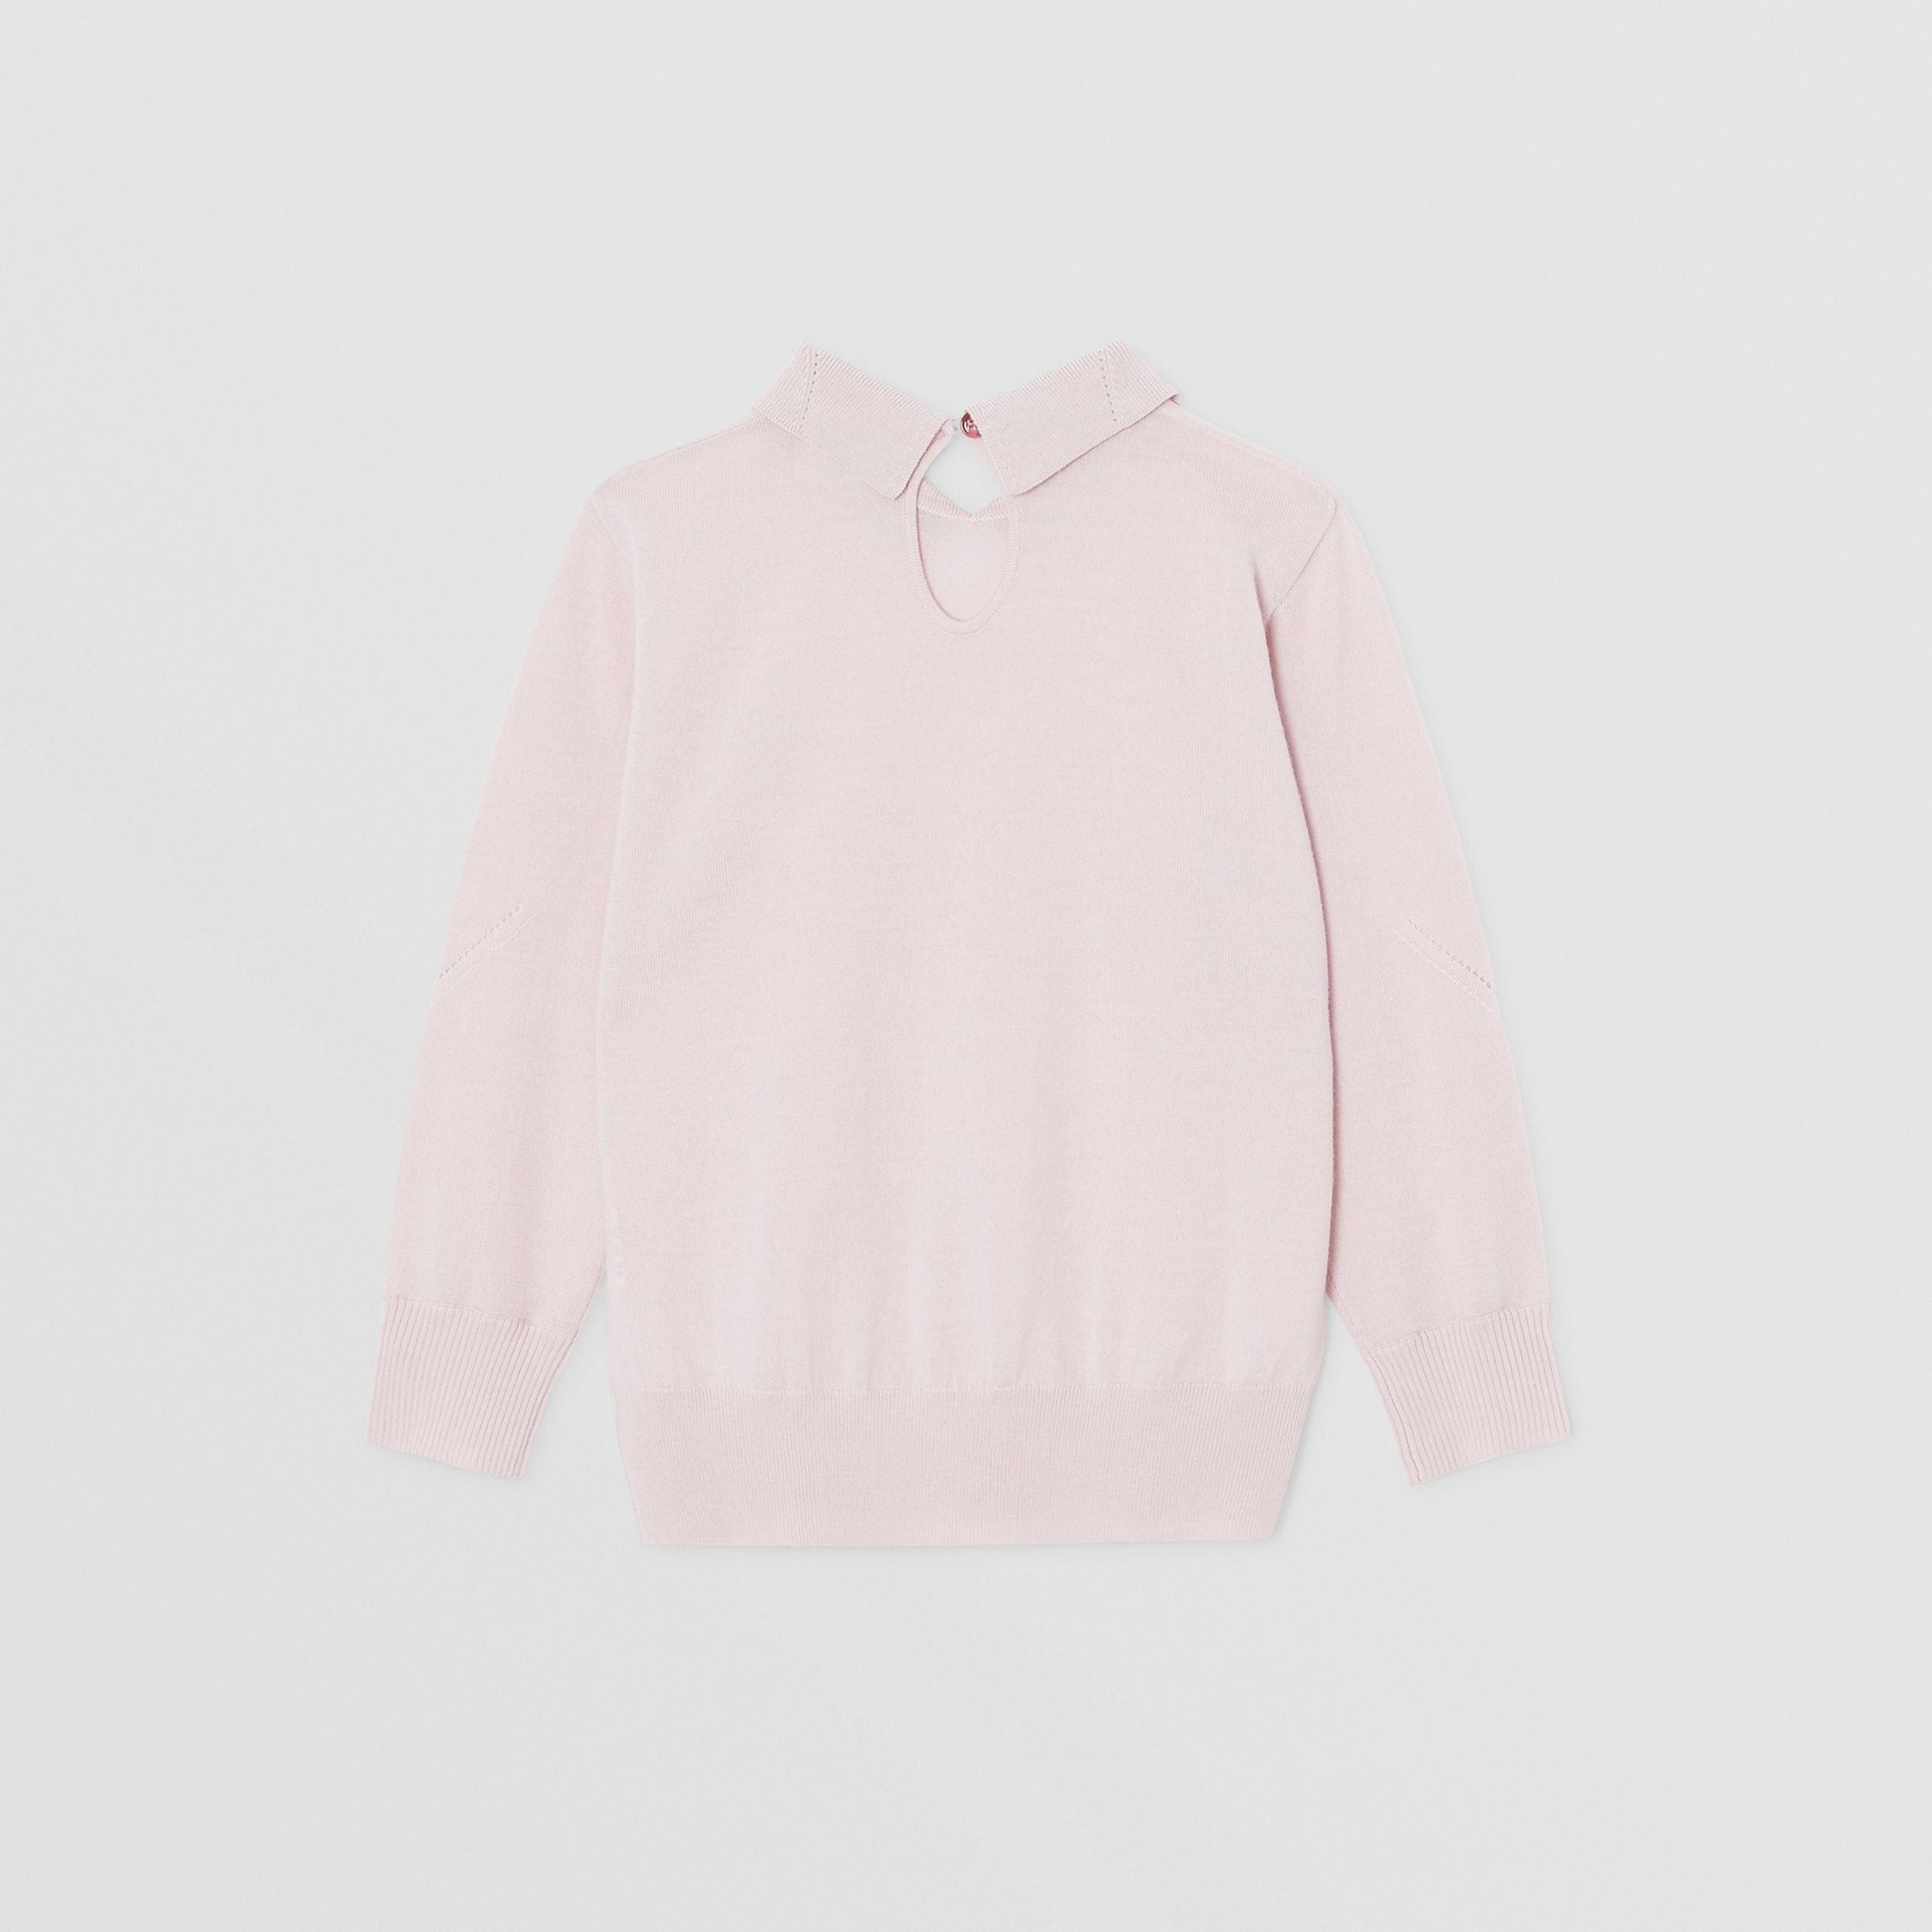 Crystal Monogram Motif Merino Wool Sweater in Light Pink | Burberry - 4